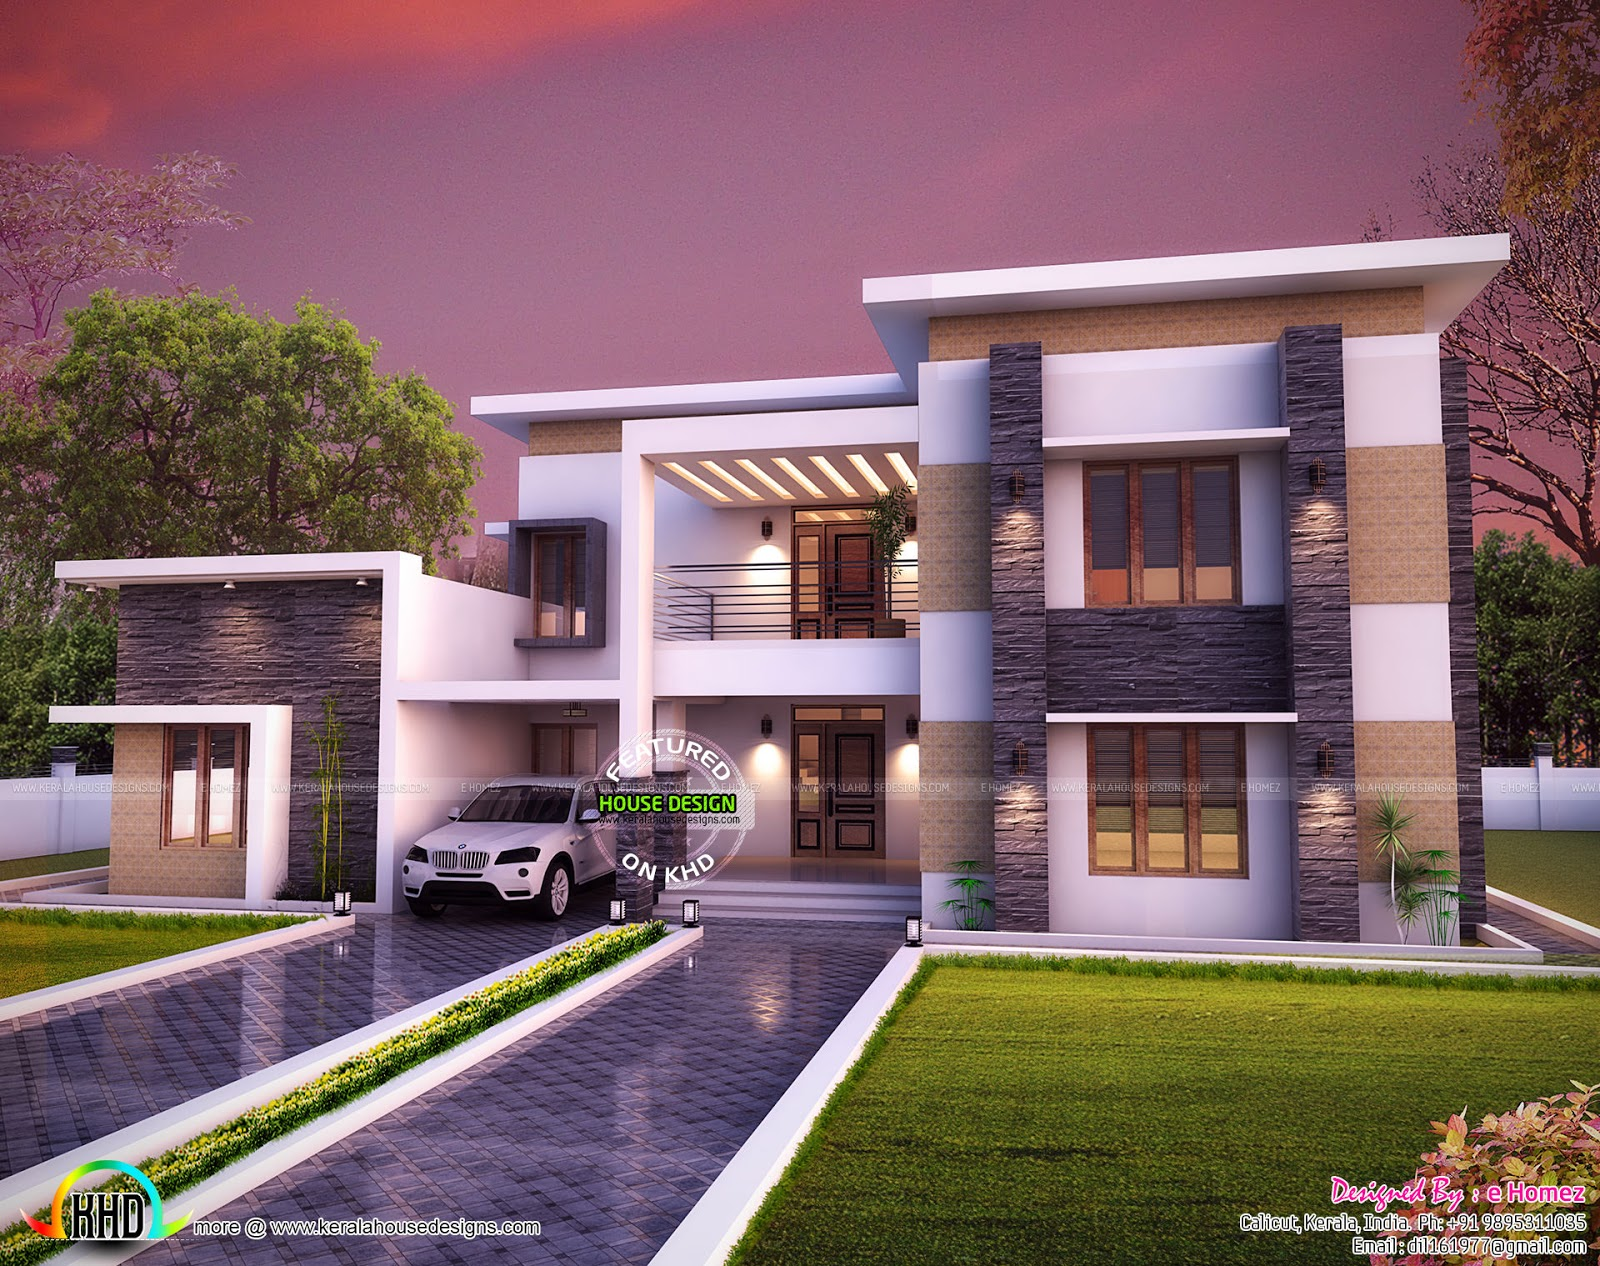 3654 sq ft flat roof house plan kerala home design and for Kerala home design flat roof elevation